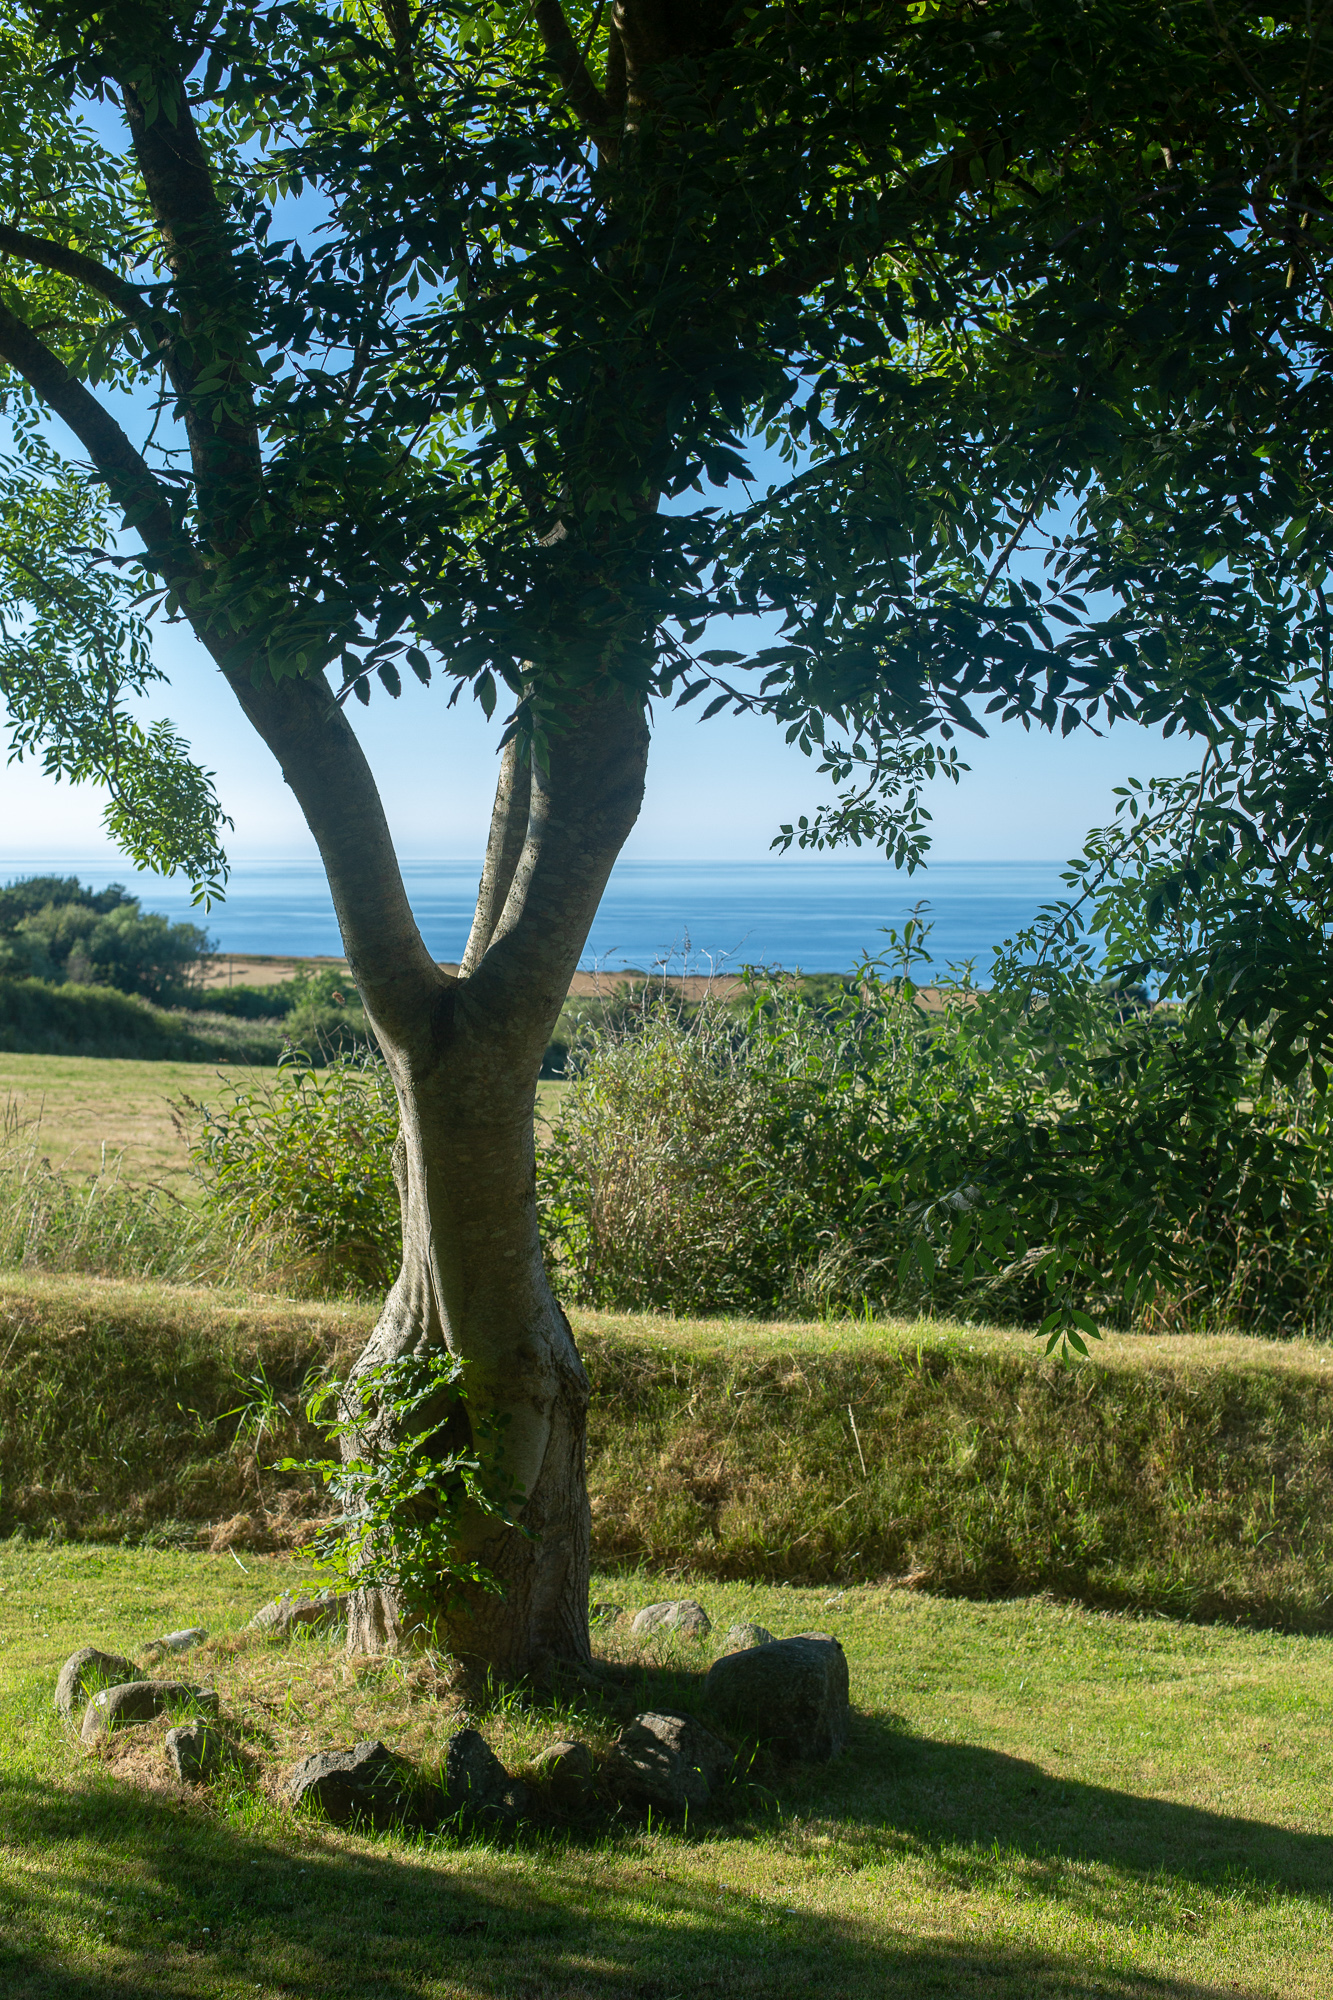 Yr Hafan 5* holiday cottages enjoying landscaped gardens & sea views